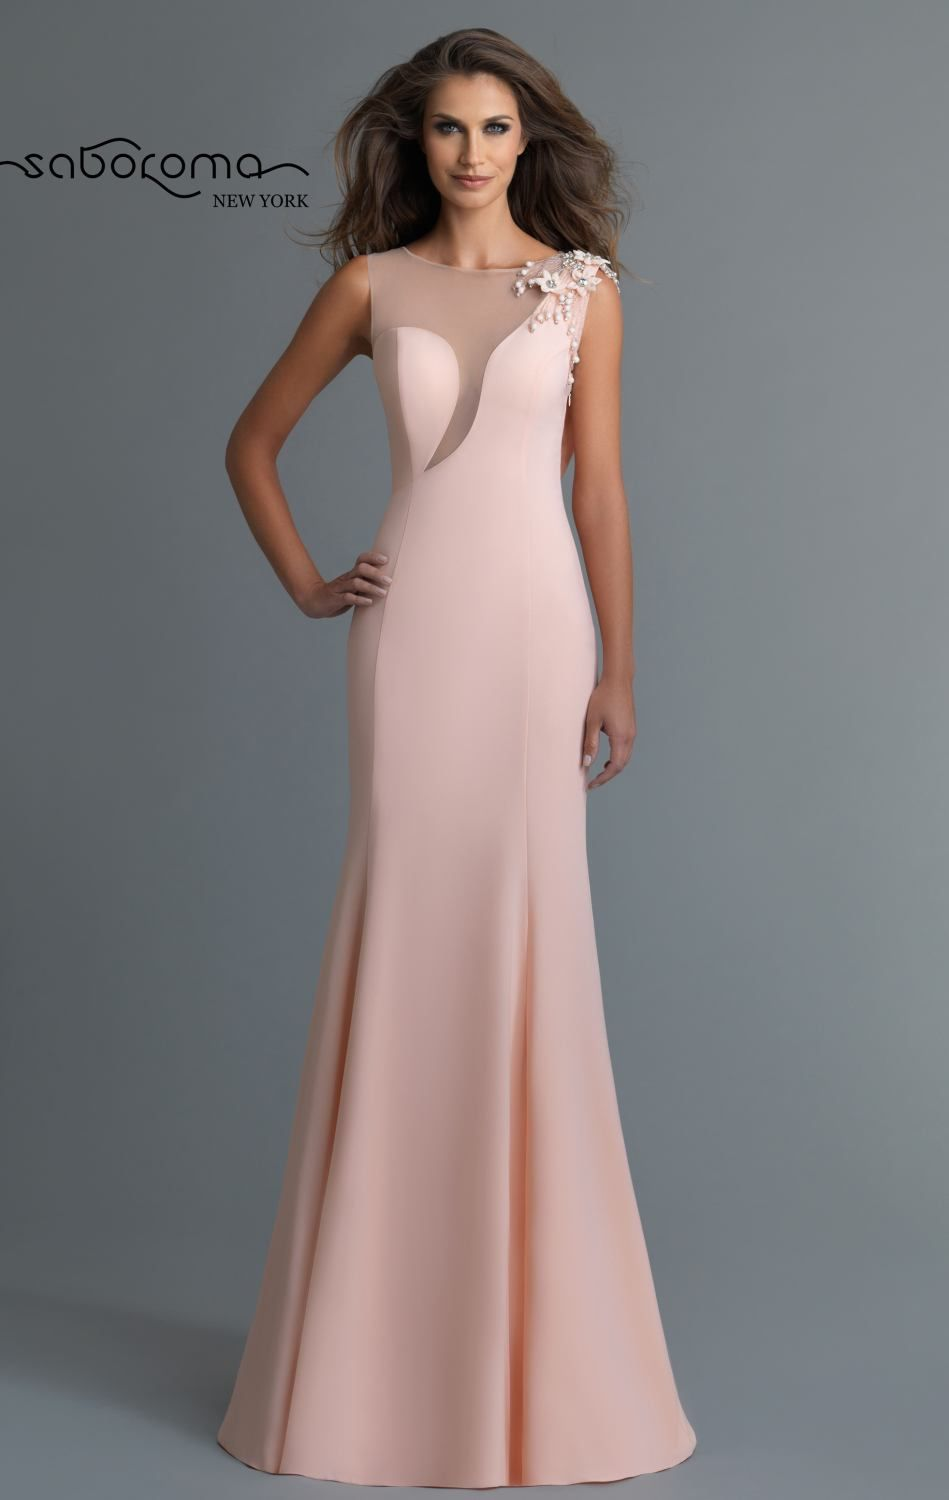 saboroma 4037saboroma | evening gowns, gowns, evening